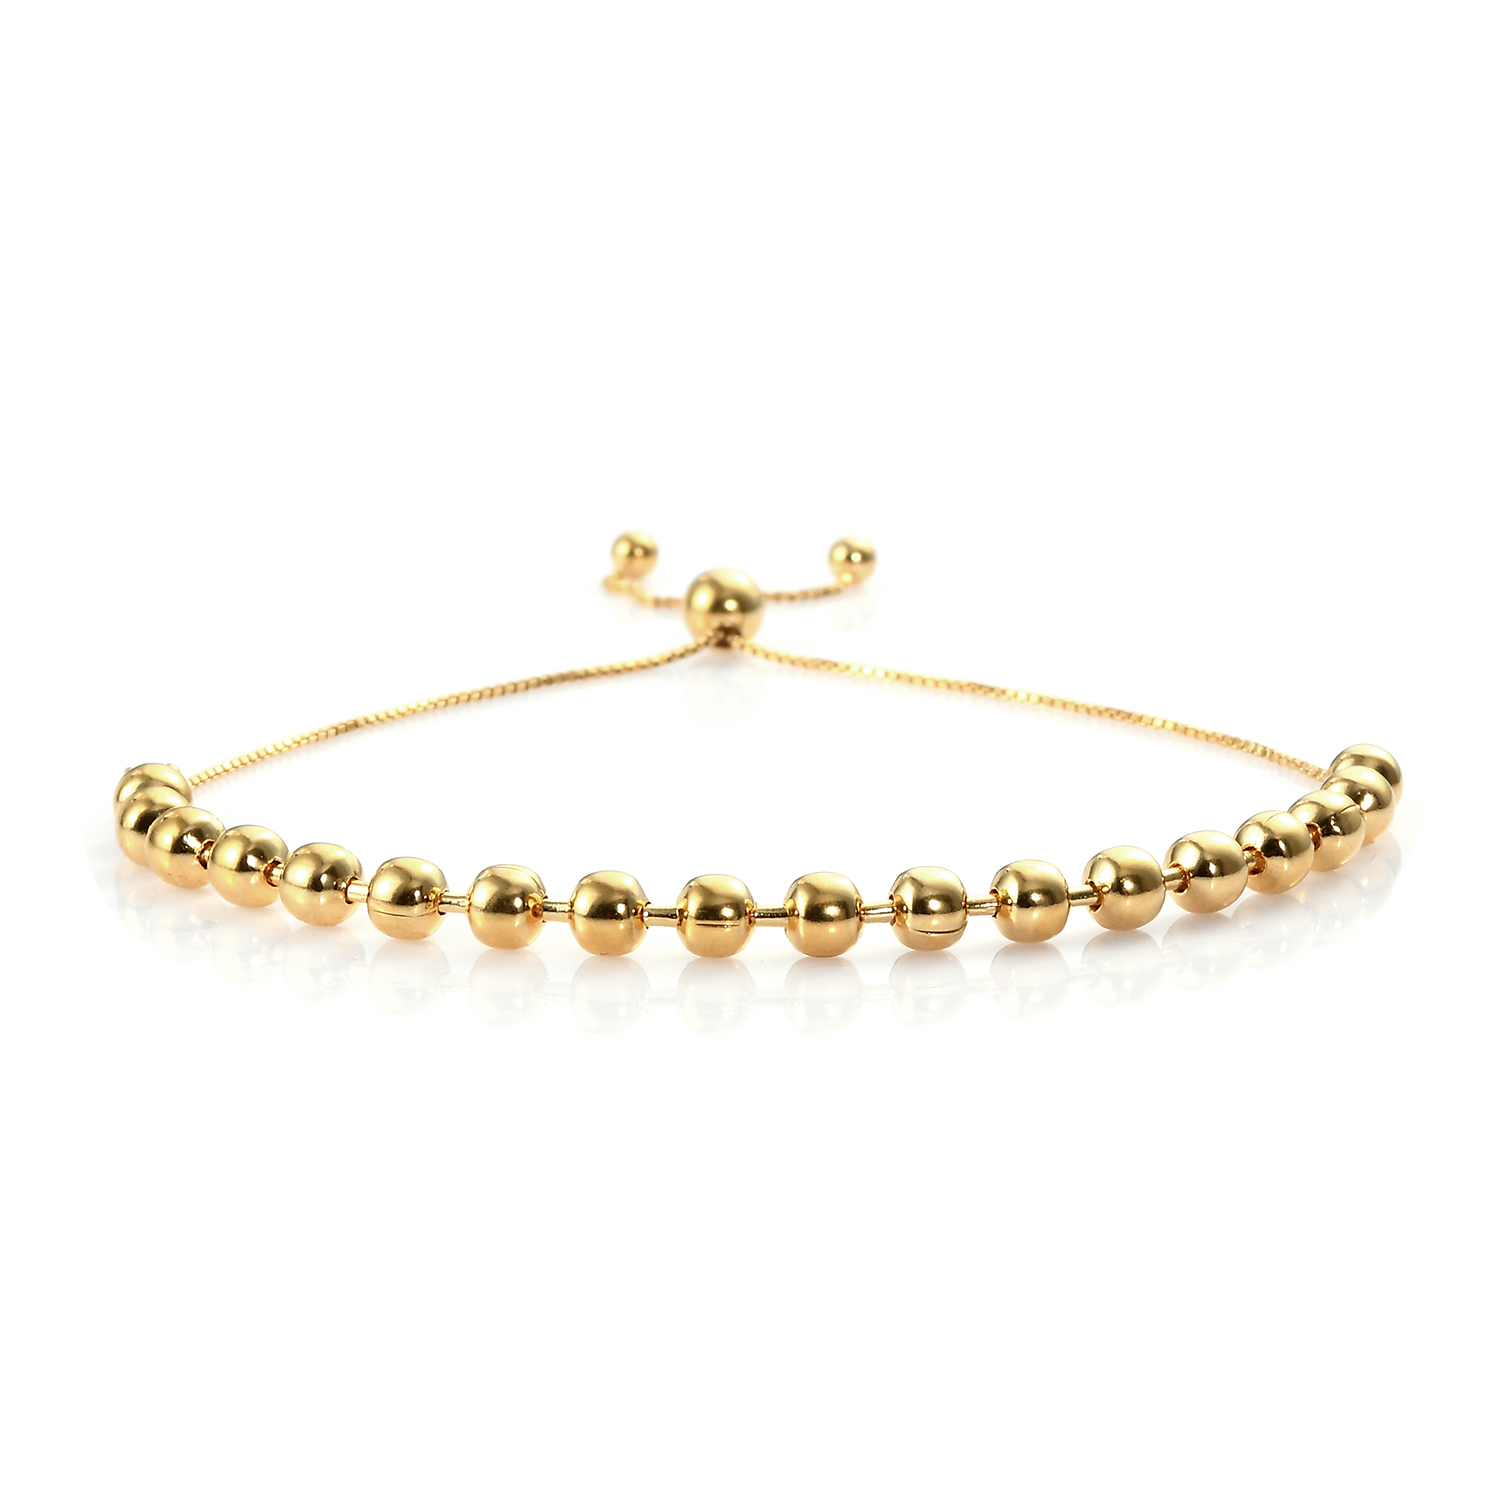 Bolo Bracelet in 14K Yellow Gold over Sterling Silver (4 g)